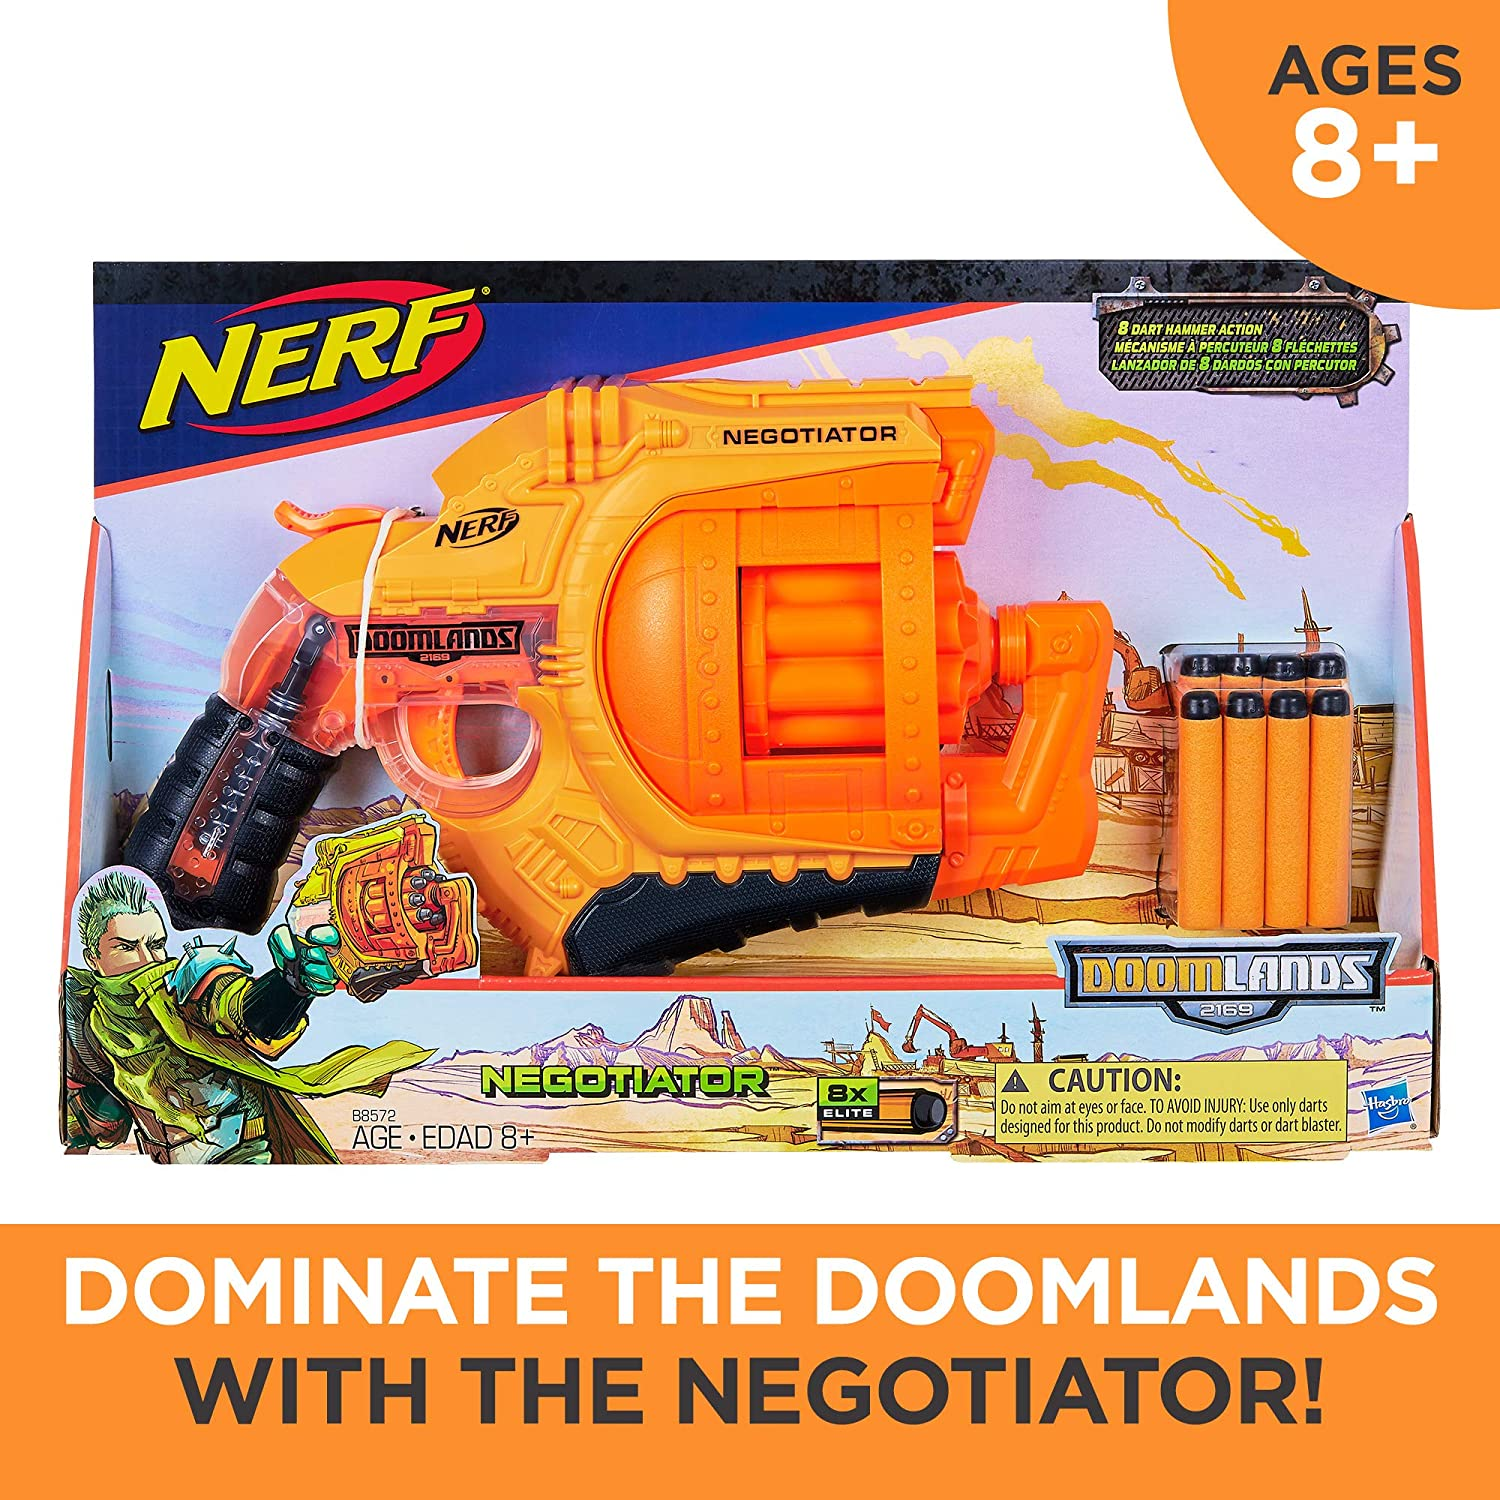 Nerf Doomlands 2169 Negotiator Blaster-kids toys, boy toys, outdoor toys, fun toys, nerf